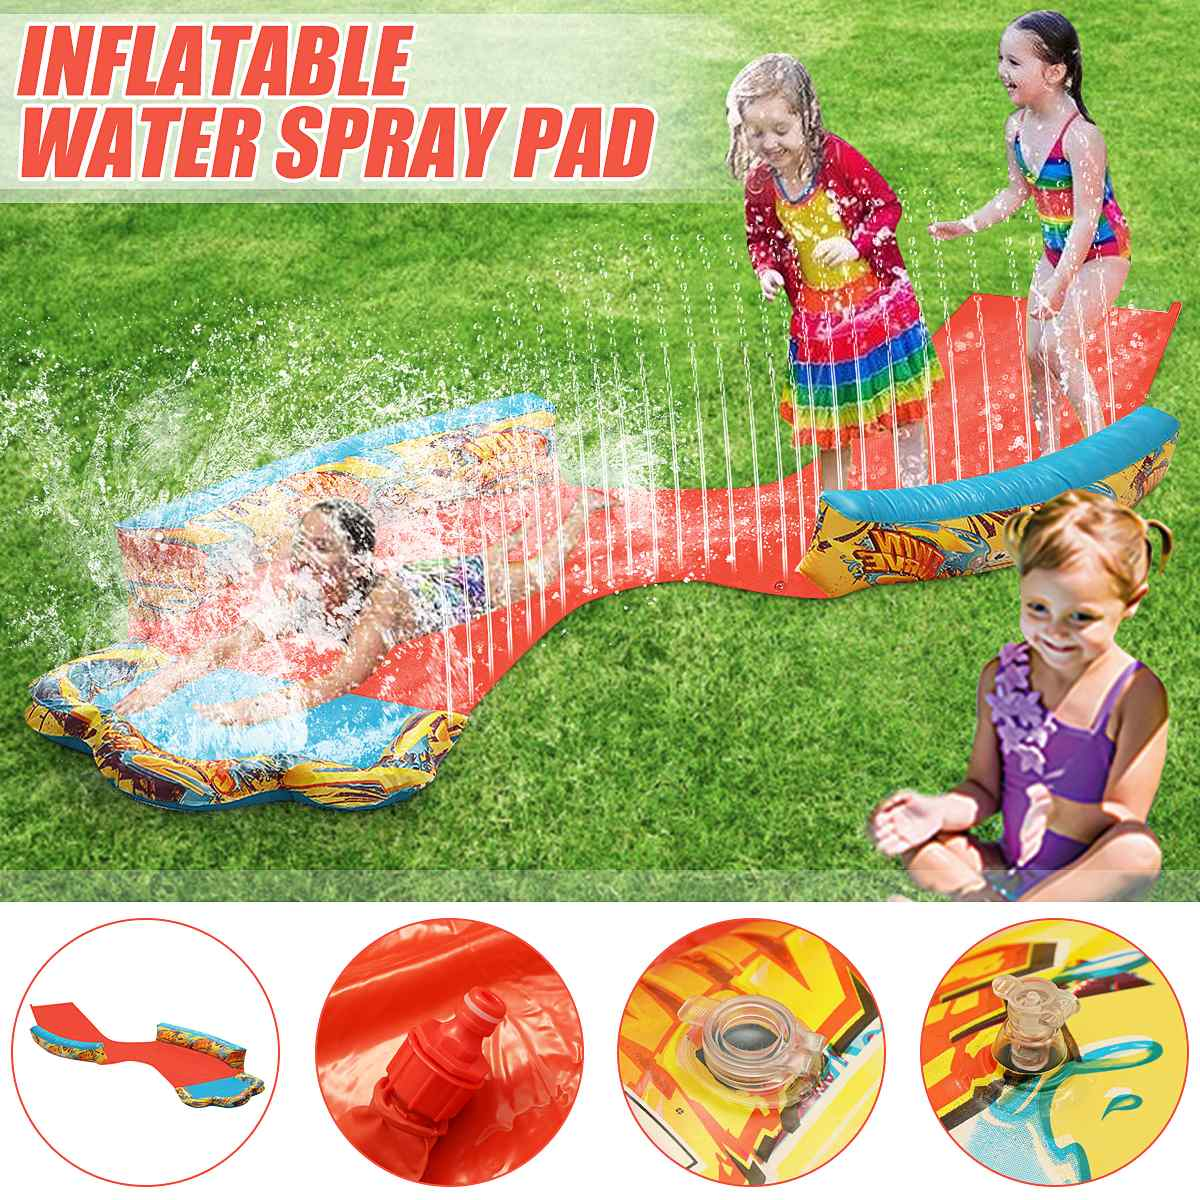 New 480cm Inflatable Water Lawn Slide Water Spray Kids Adult Toys Outdoor Swimming Pool Accessories Inflatable Summer Games Toy